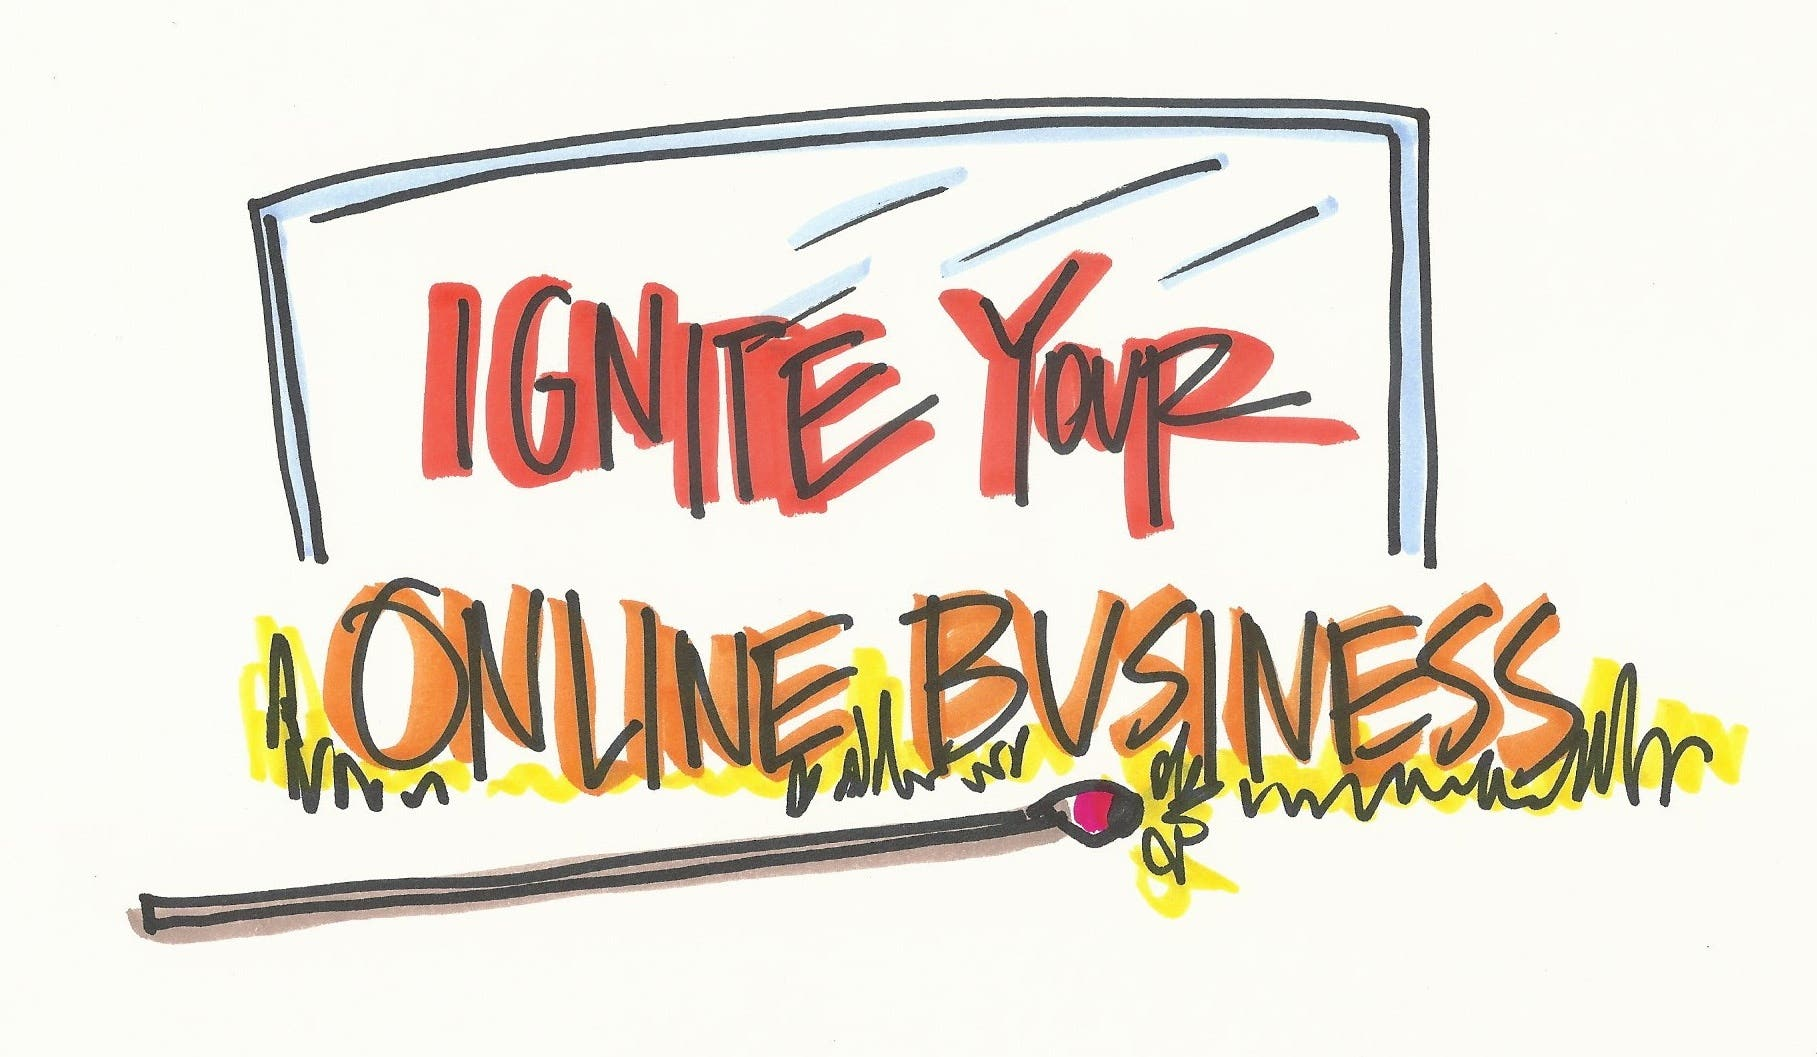 Ignite Your Online Business - from April 24th, 2021